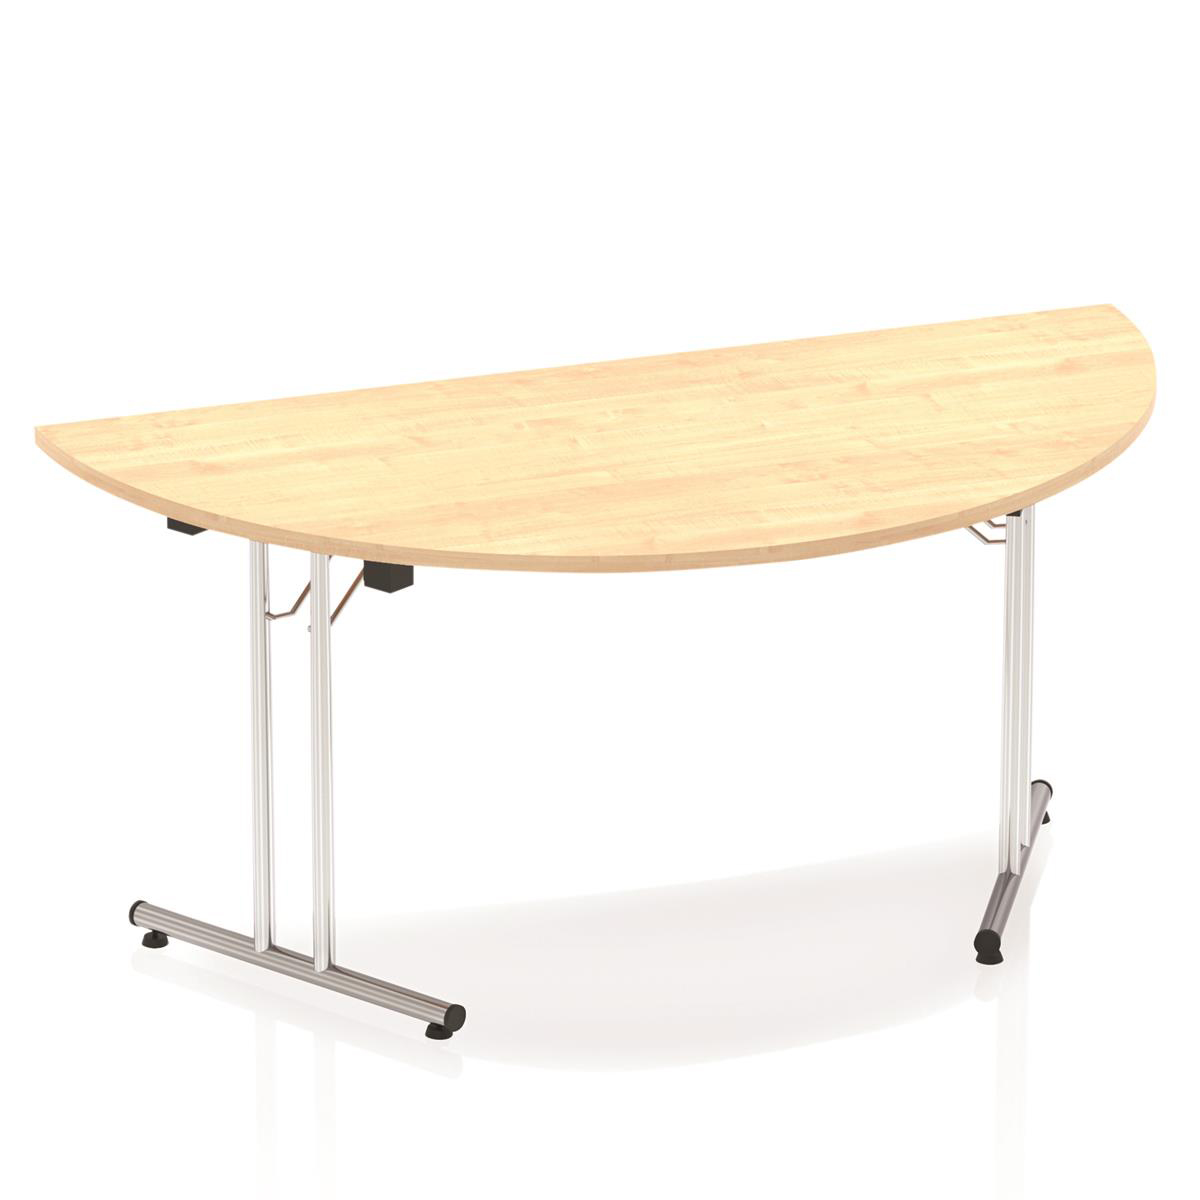 Sonix Semi-circular Chrome Leg Folding Meeting Table 1600x800mm Maple Ref I000721